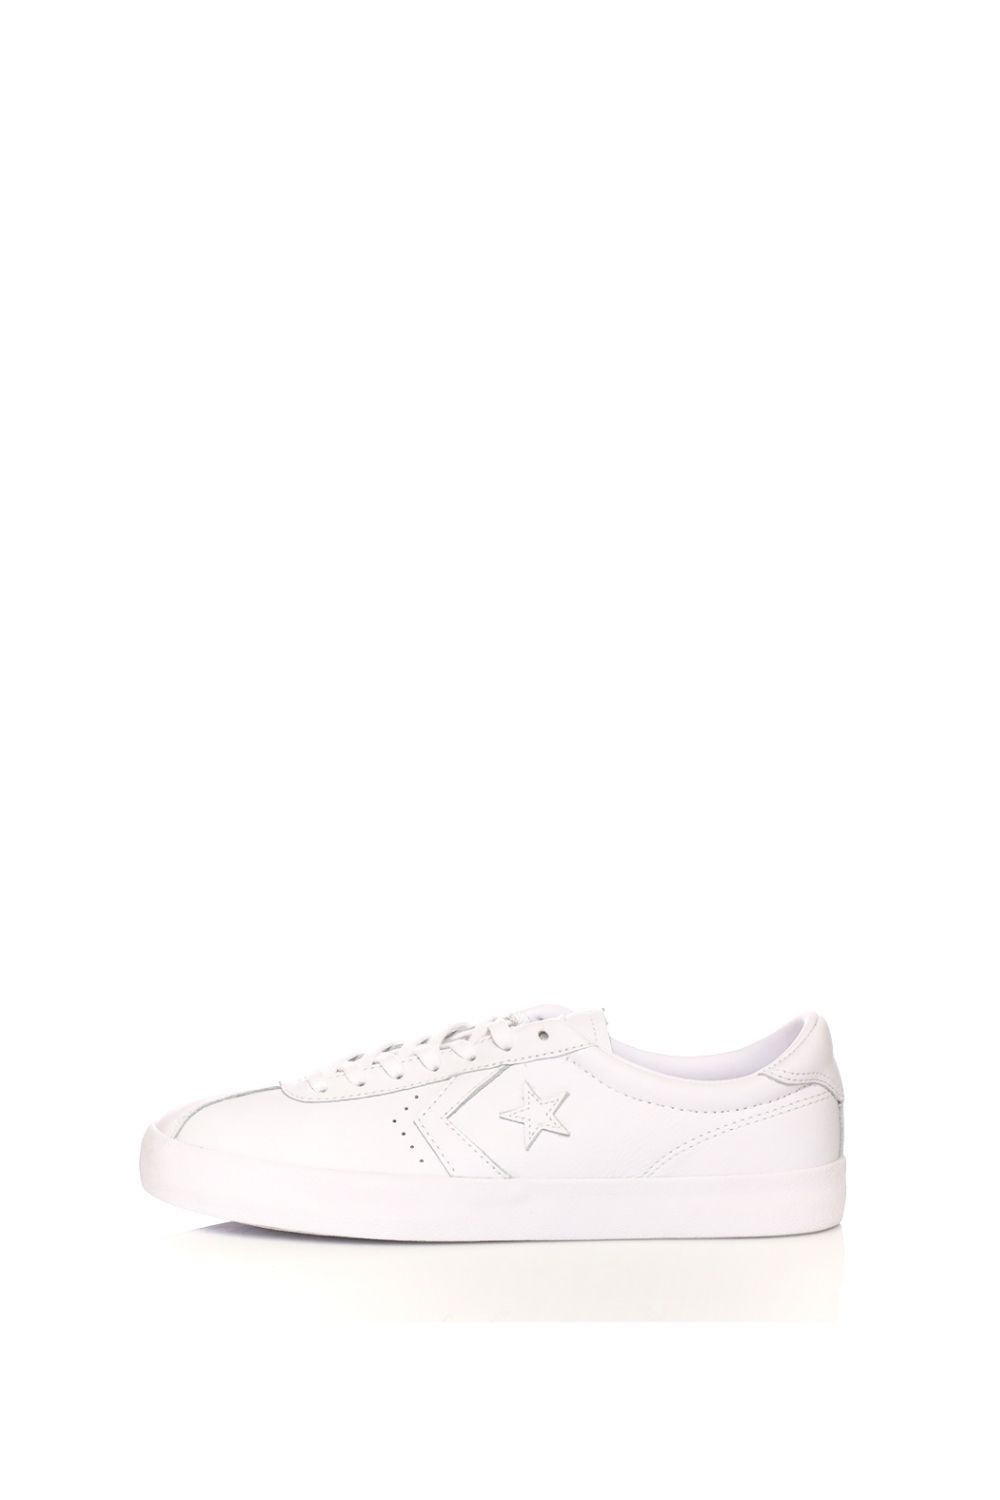 CONVERSE – Unisex sneakers CONVERSE Breakpoint Ox λευκά